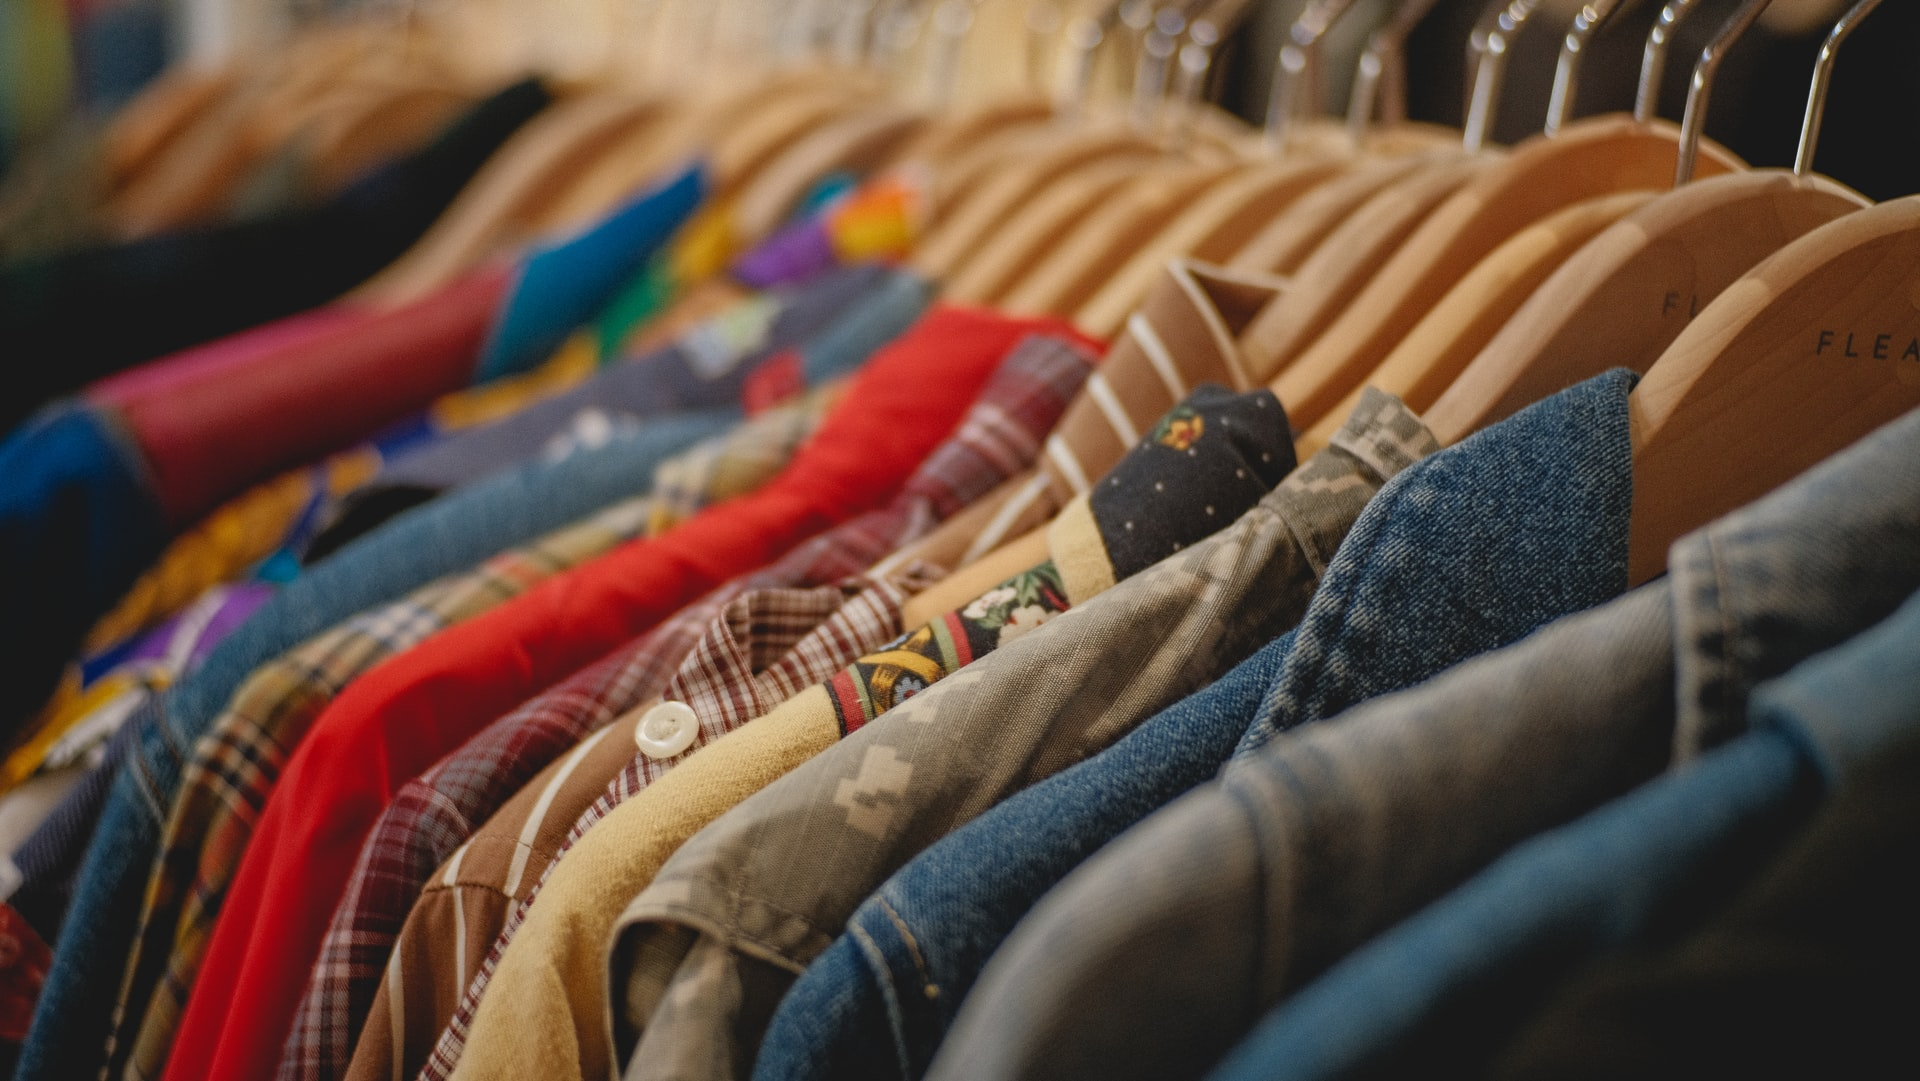 Refresh Your Wardrobe for Fall at Ten Car Pile Up